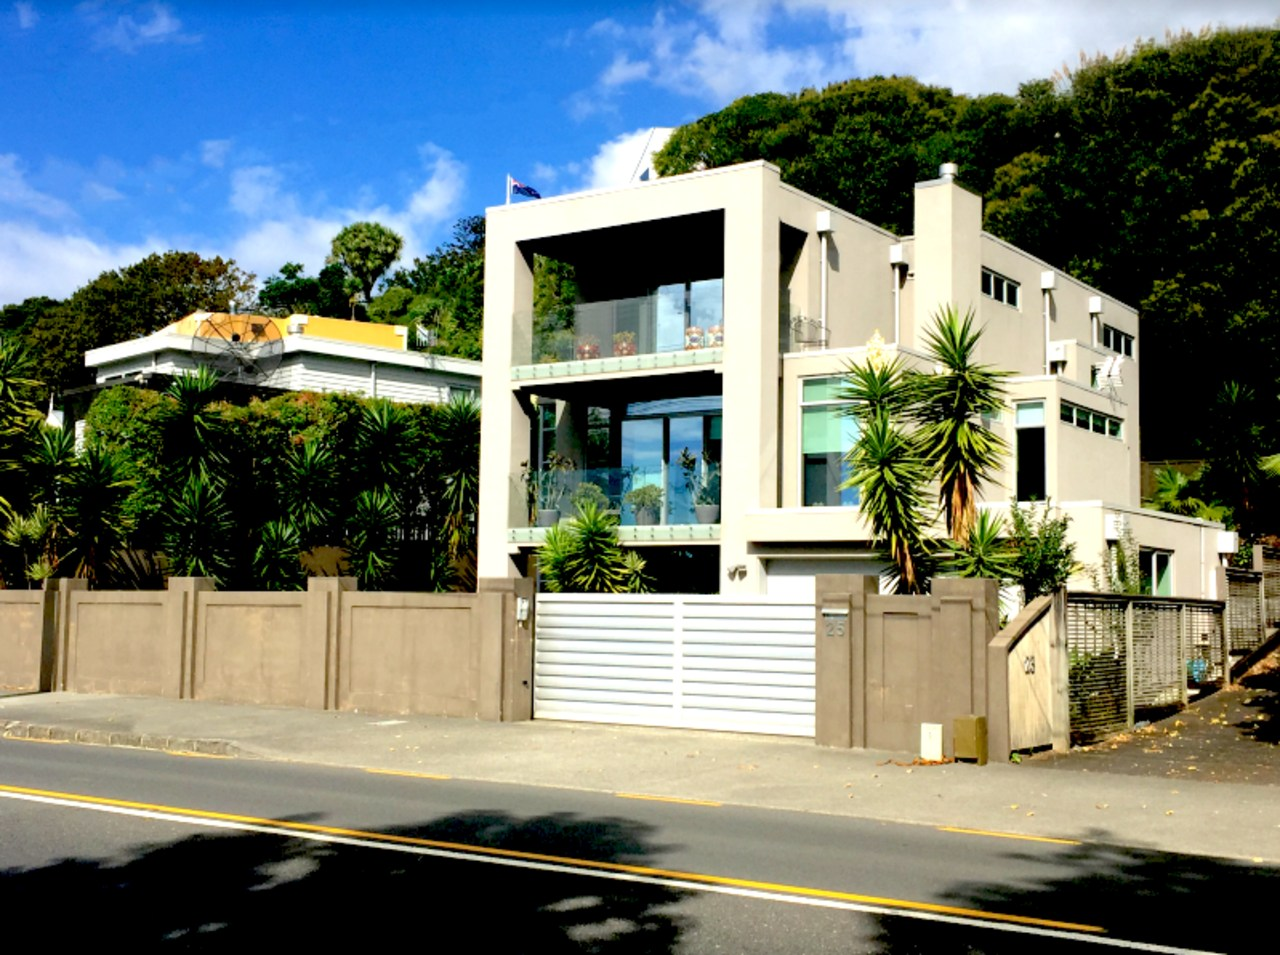 Project Remuera – Auckland apartment, architecture, building, condominium, elevation, facade, home, house, mixed use, neighbourhood, property, real estate, residential area, villa